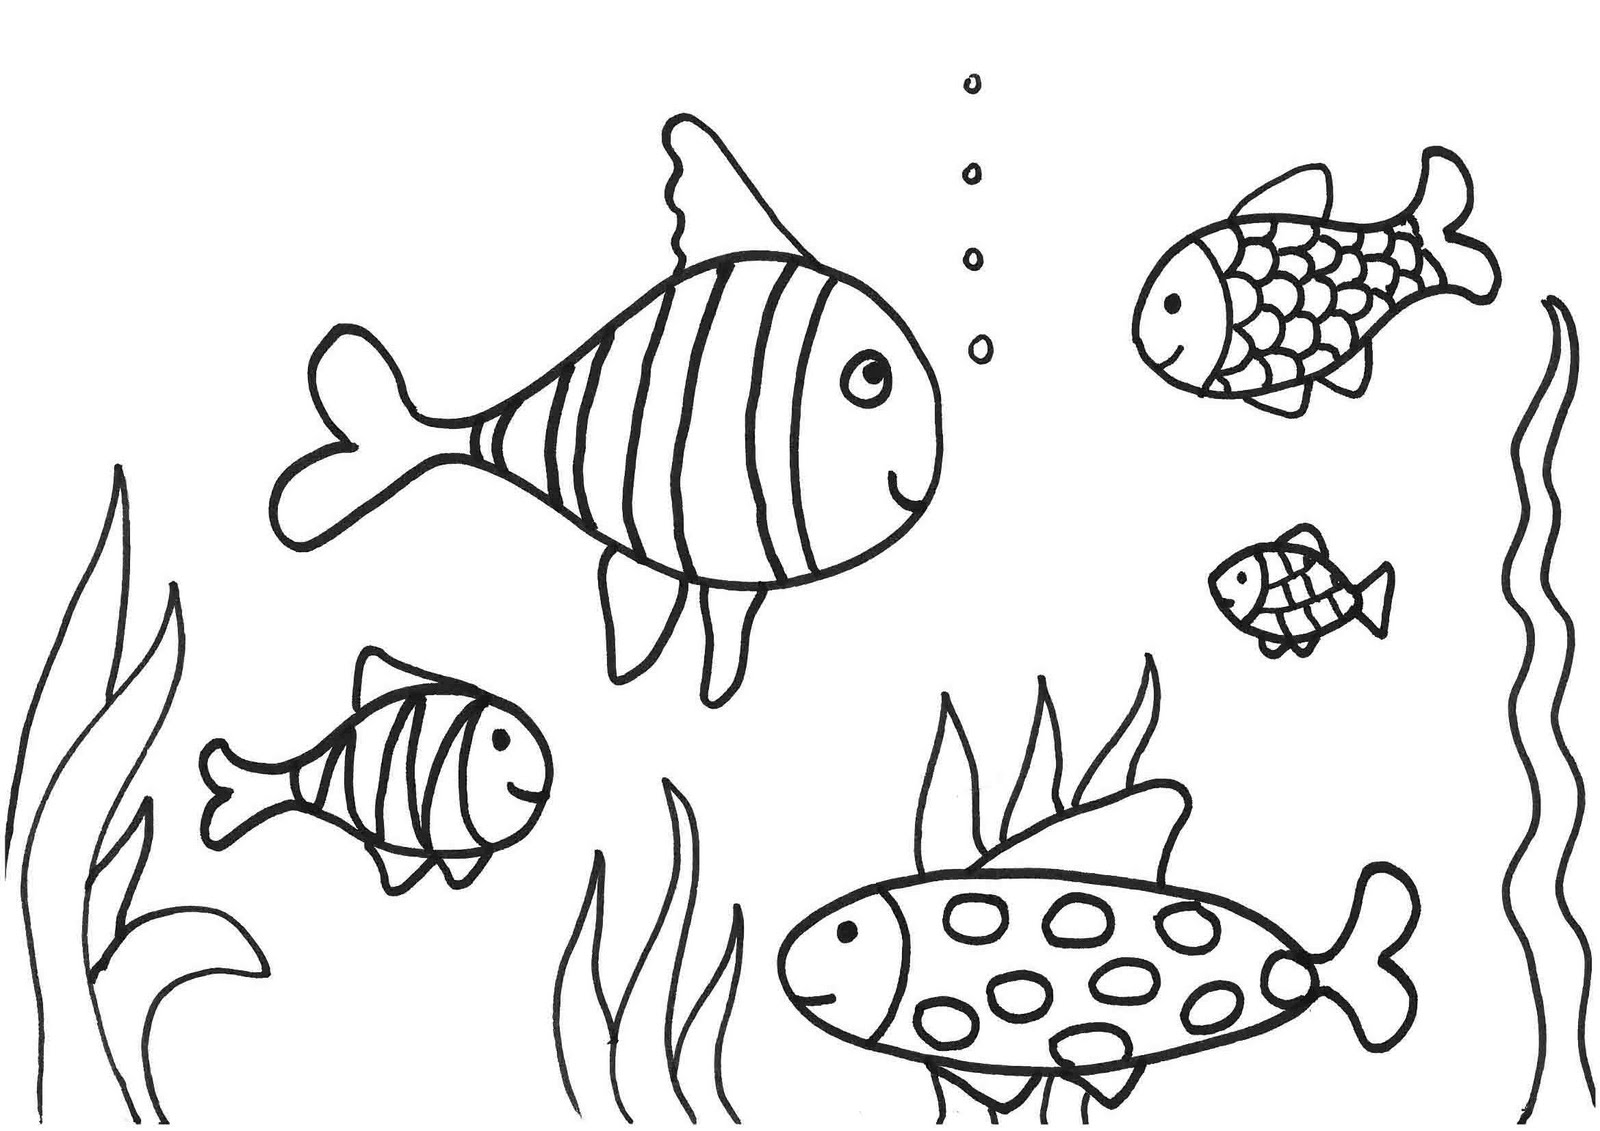 ocean fish coloring pages ocean life coloring pages to download and print for free fish coloring ocean pages